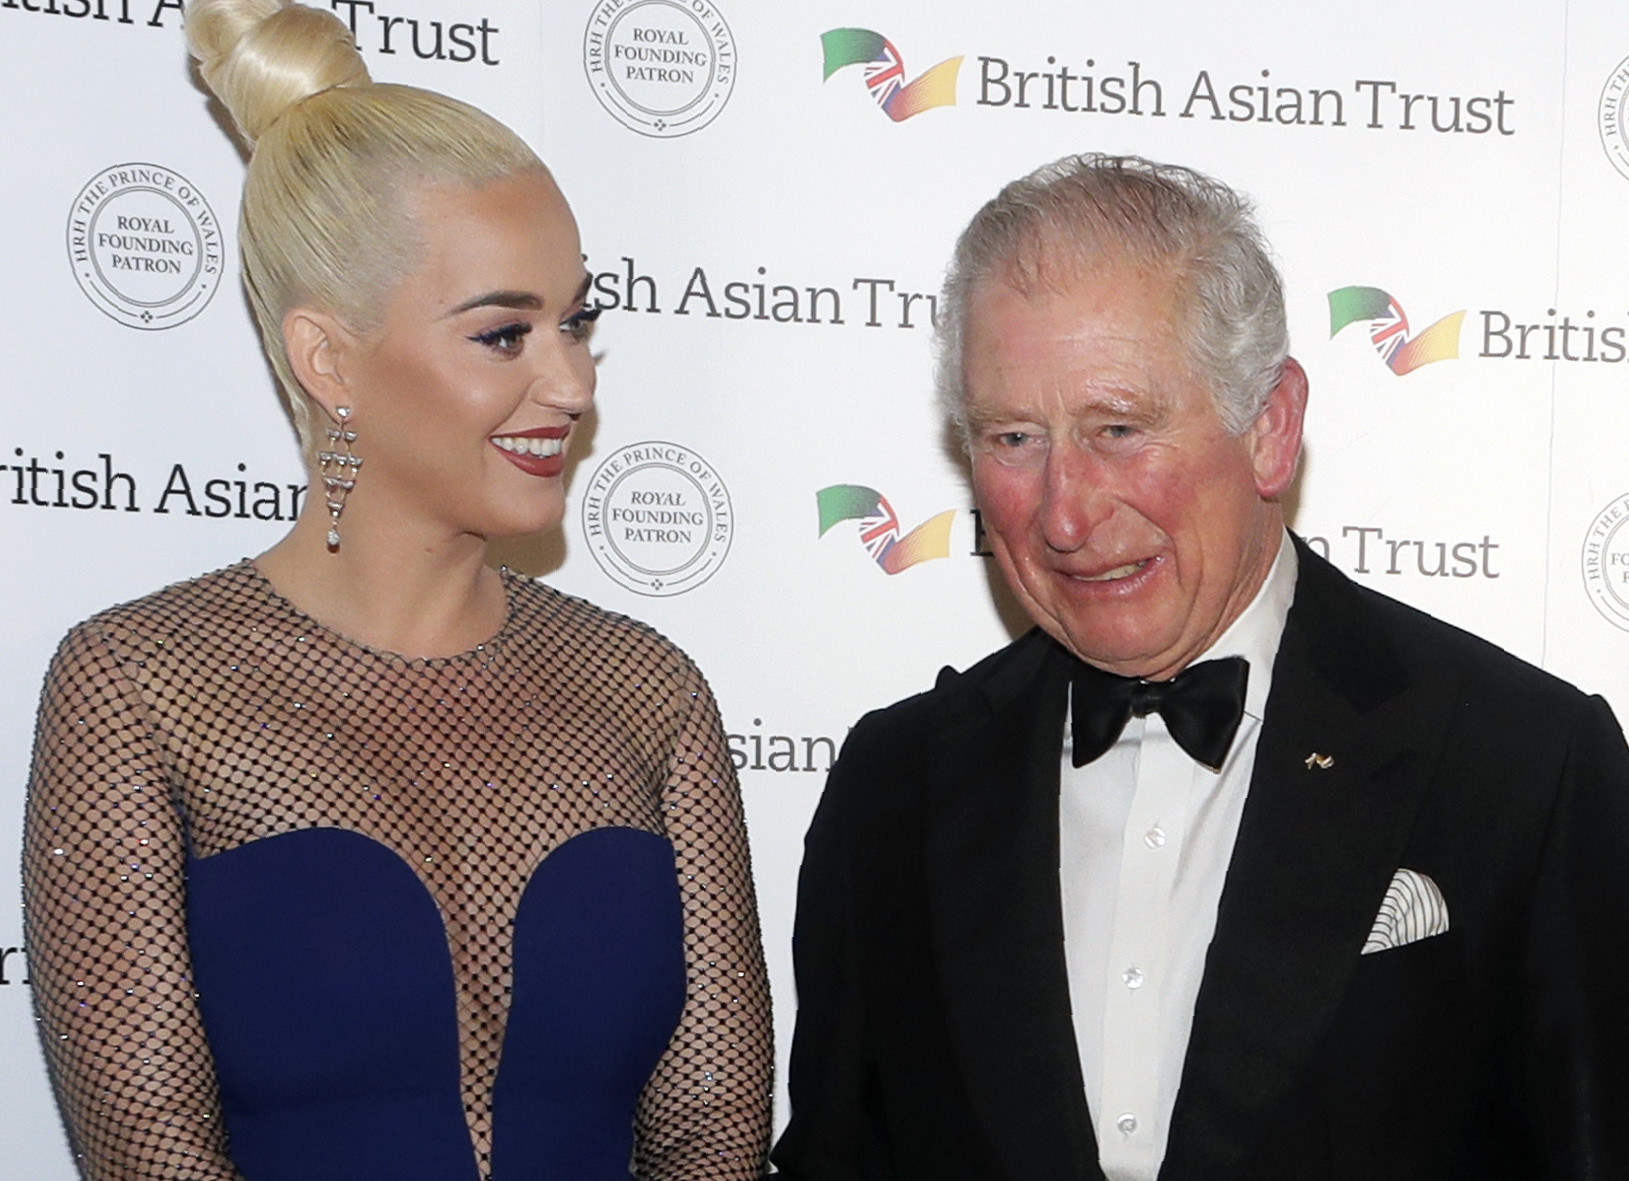 Katy Perry named as ambassador for Prince Charles' South Asia charity